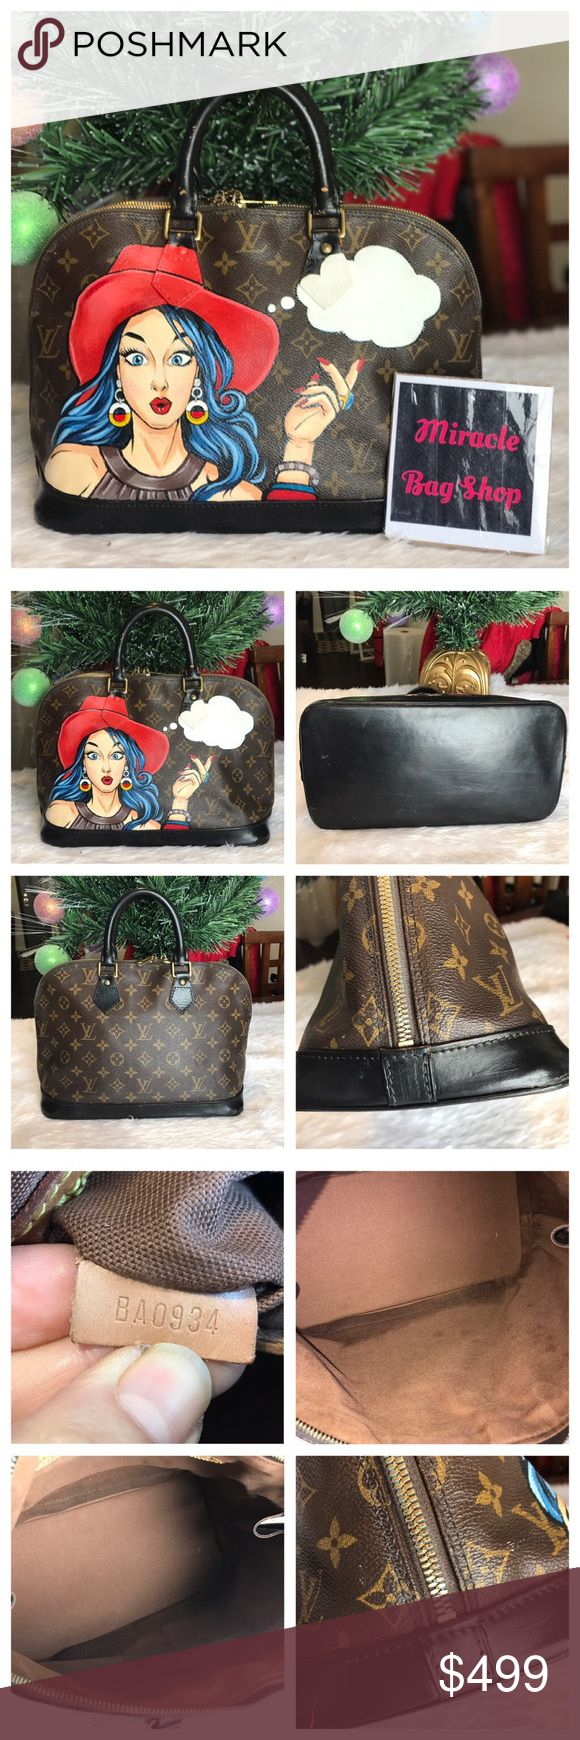 Authentic  Louis Vuitton Alma Pm hand painted Lady 100% Authentic Pre-Owned Louis Vuitton Alma Pm hand painted beautiful lady. Please look all picture Louis Vuitton Bags Shoulder Bags